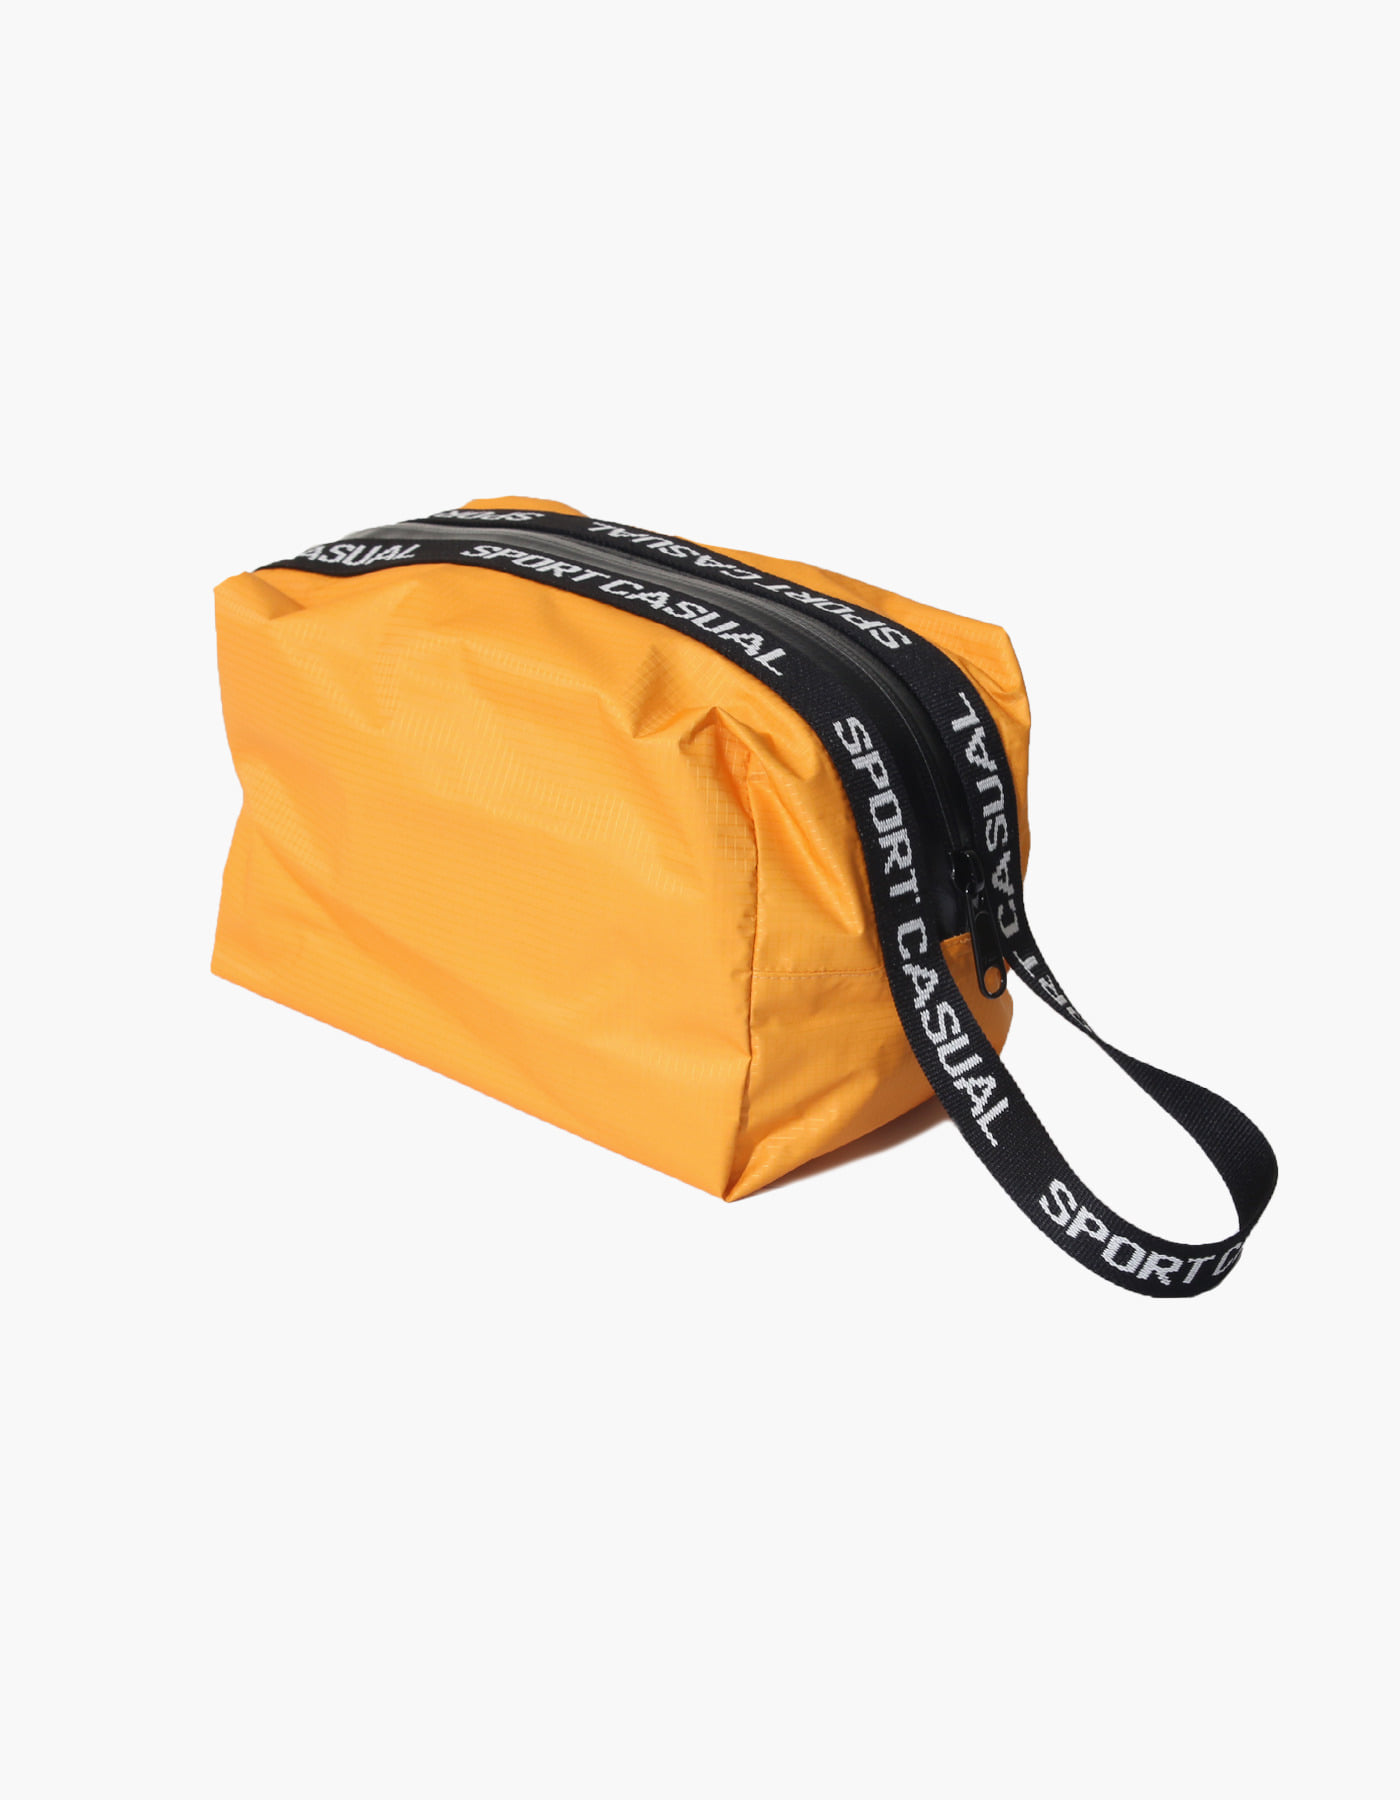 SPORTS POUCH / YELLOW